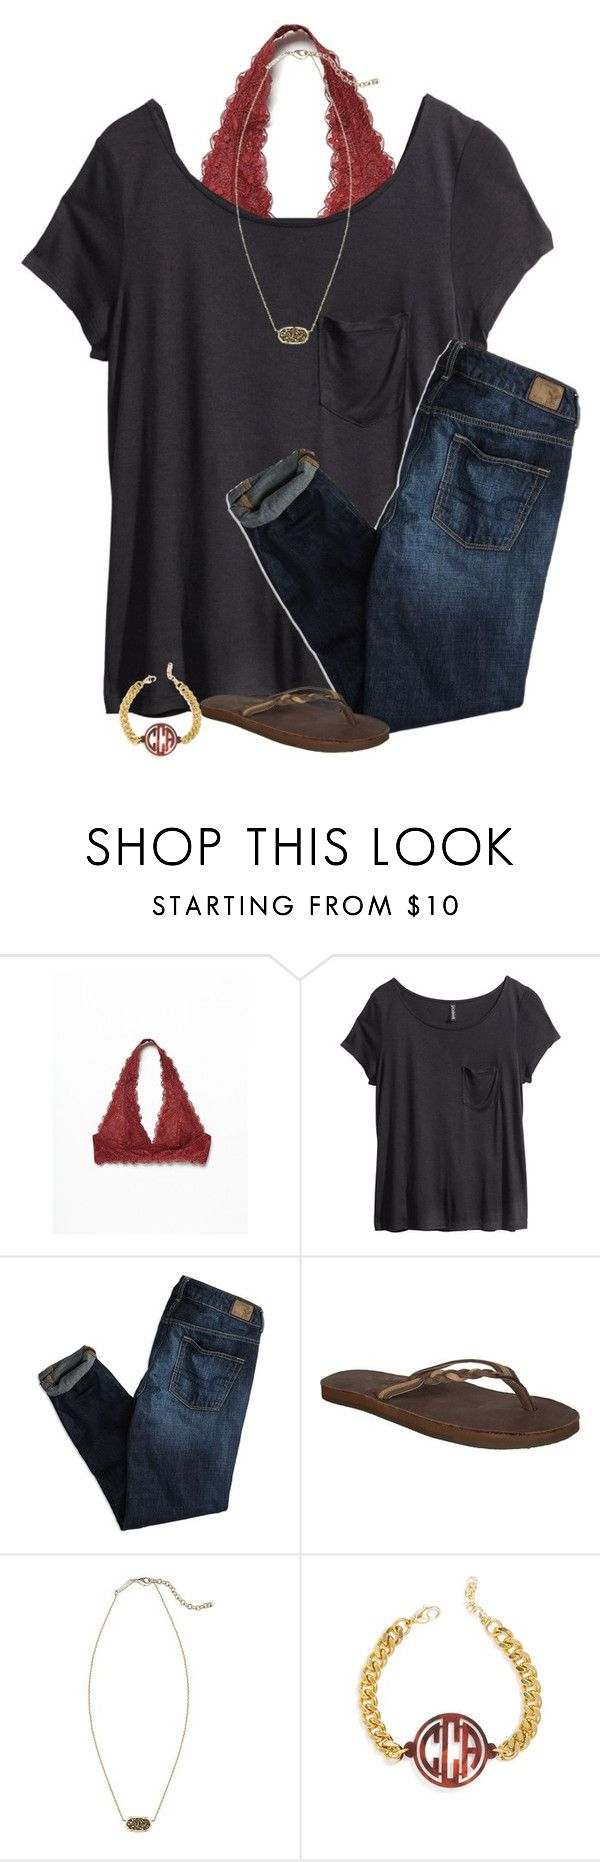 Cute school outfit school outfits american eagle outfitters and